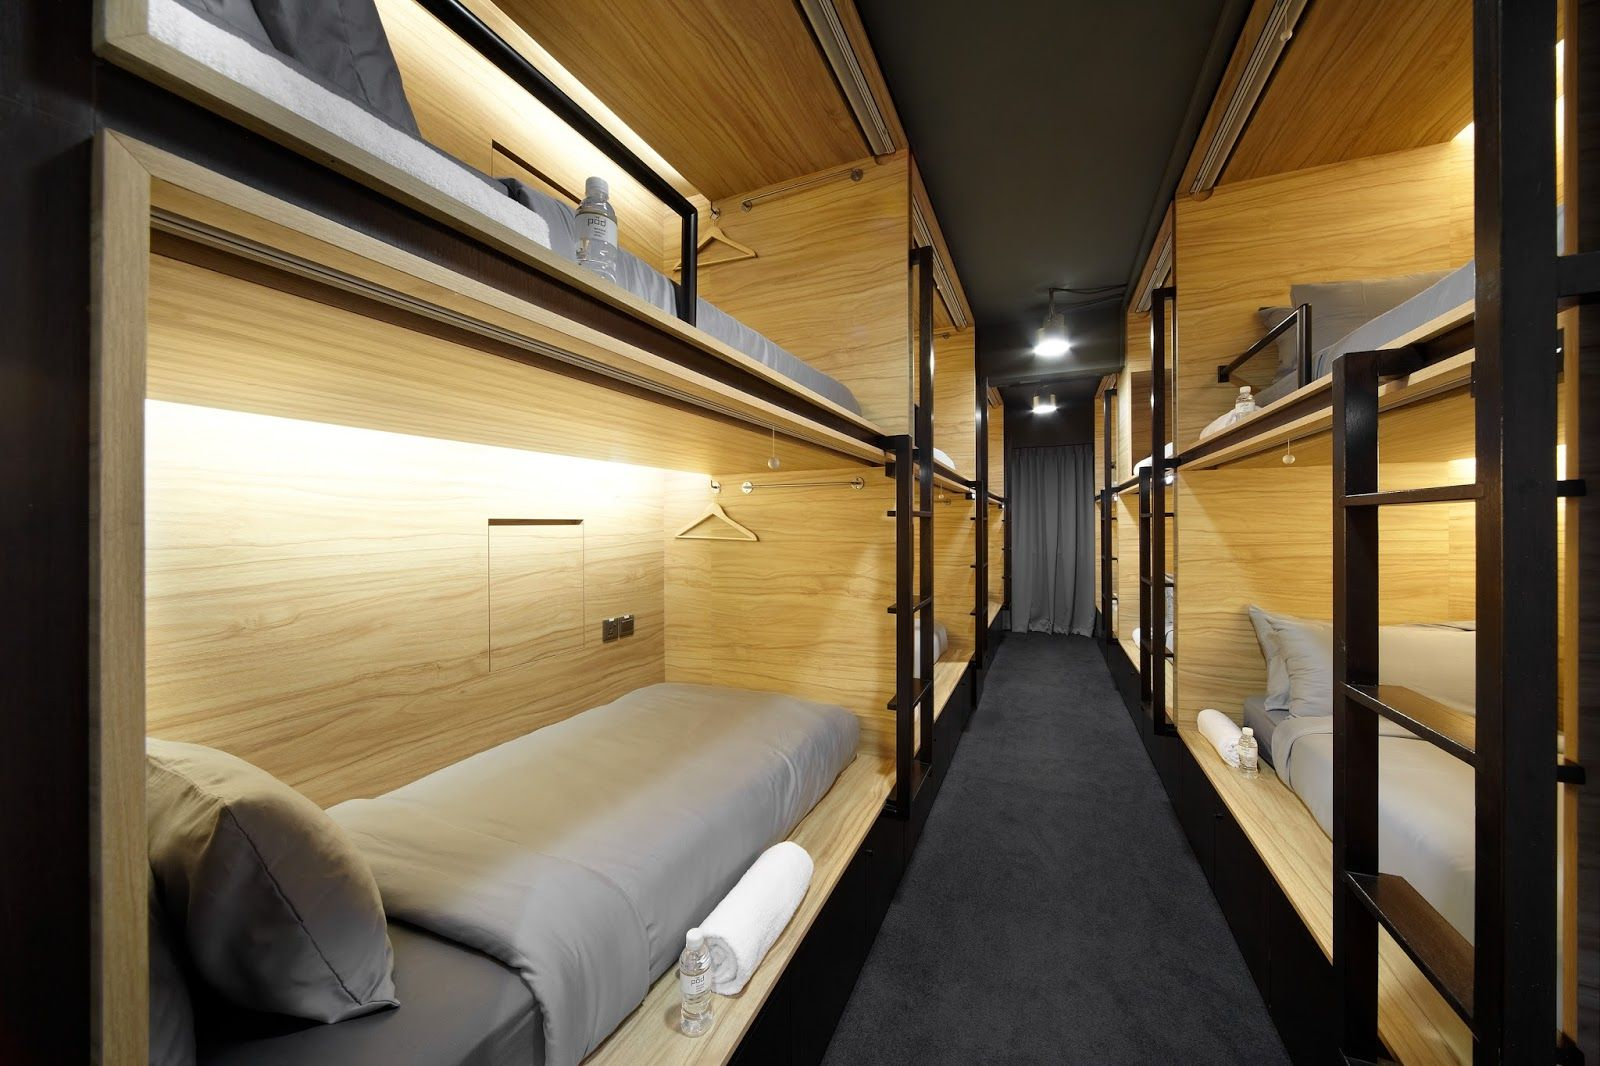 Capsule Hotel Considered Luxury Architecture